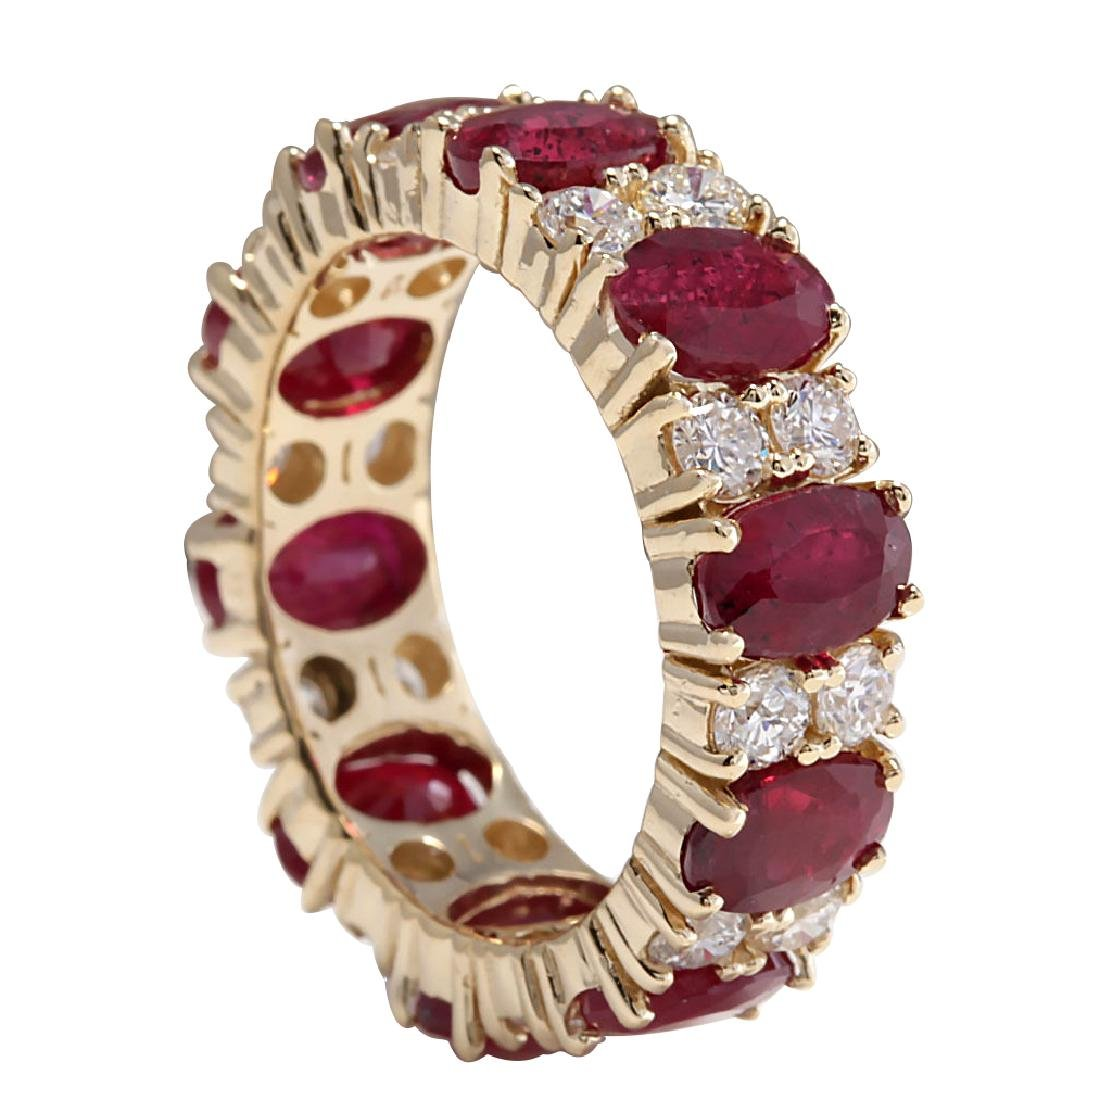 8.07CTW Natural Red Ruby Diamond Ring 18K Solid Yellow - 2